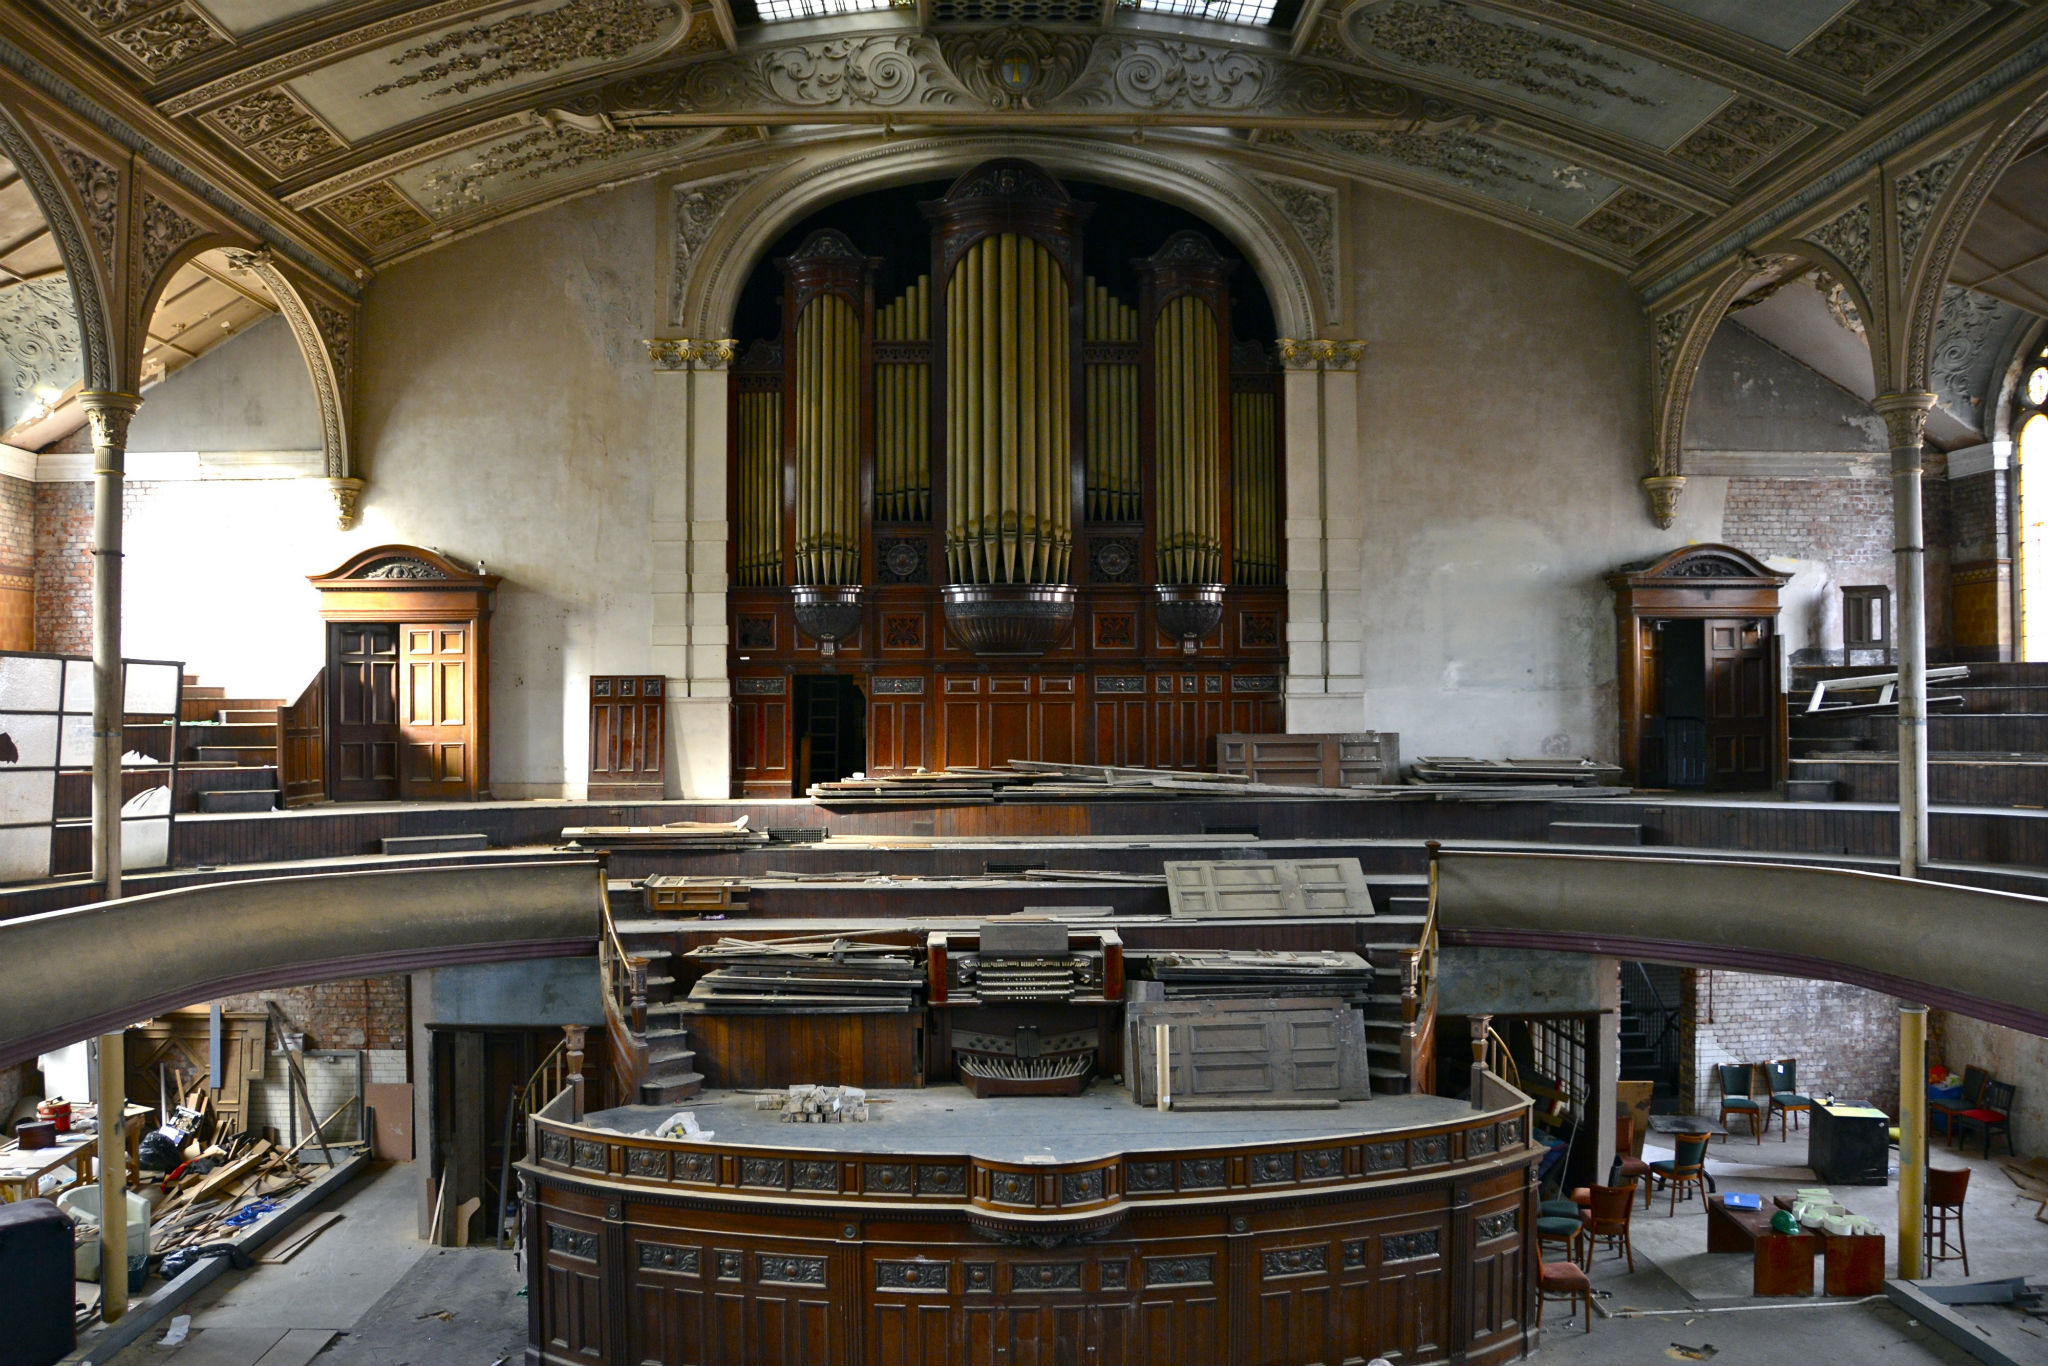 Photographs of Albert Hall in Manchester before it was renovated